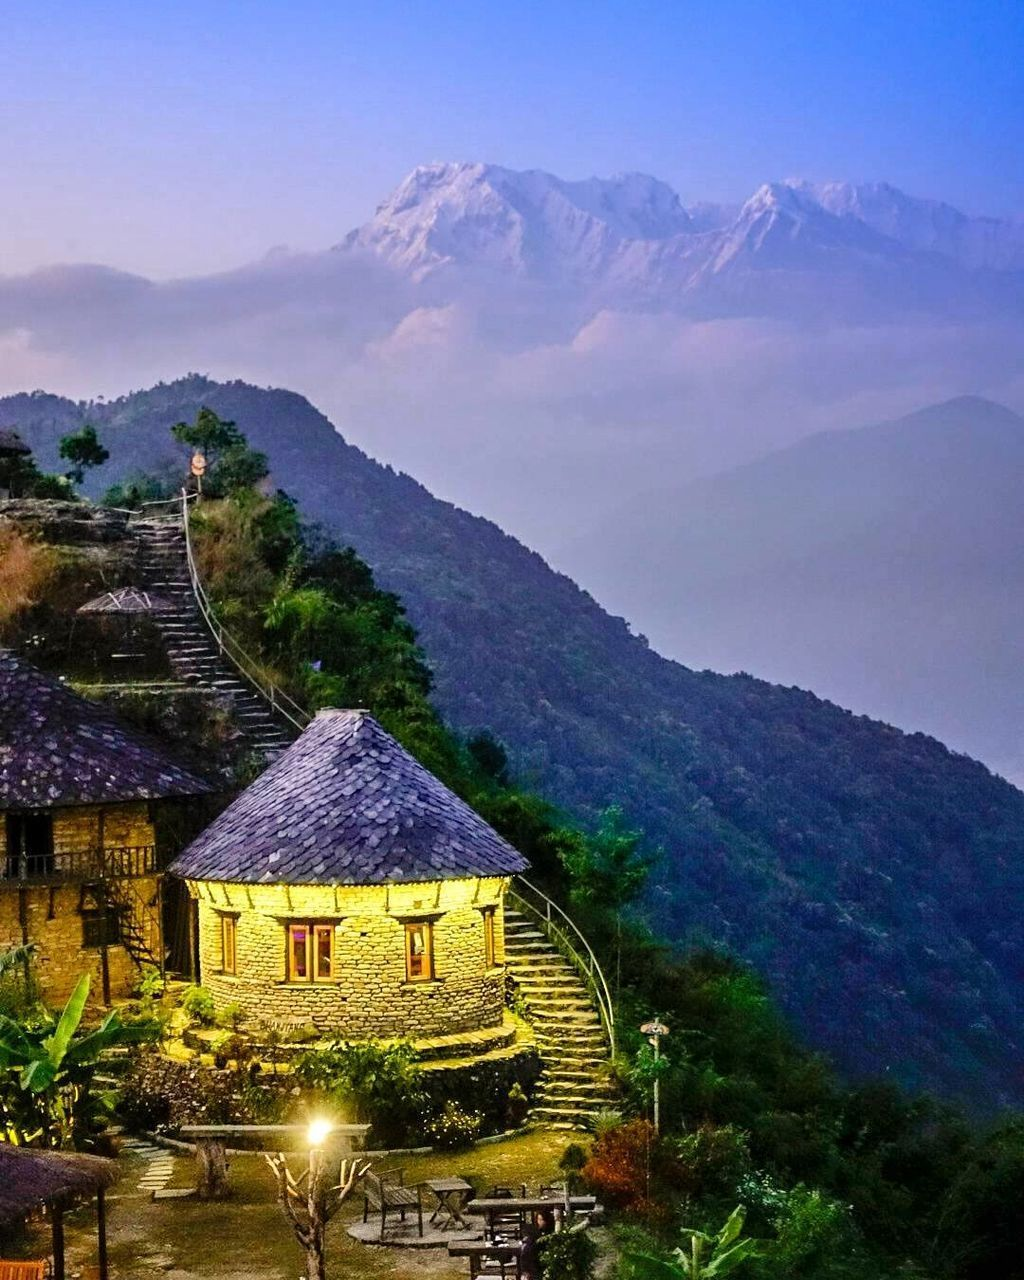 mountain, built structure, architecture, house, building exterior, outdoors, no people, scenics, nature, beauty in nature, day, landscape, tree, sky, mountain range